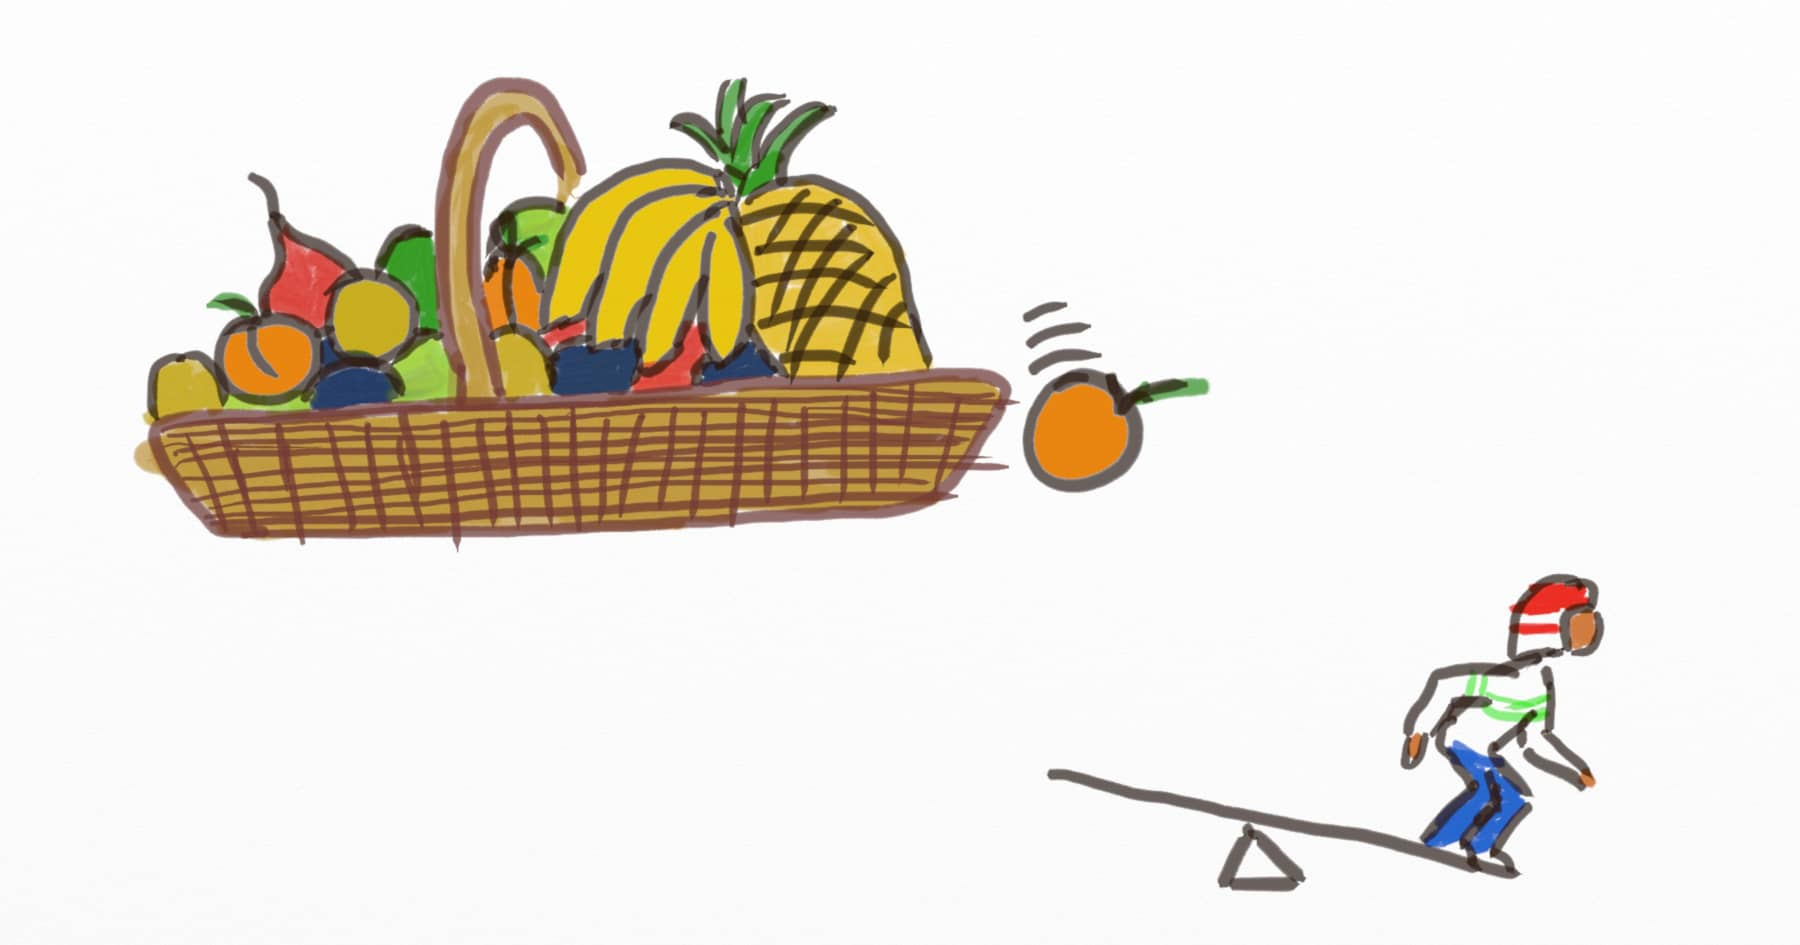 Drawing of a guy on a catapult, waiting for a giant fruit to fall from a fruit basket to propel him in the air. A fruit basket at work resulted in an unexpected productivity increase.